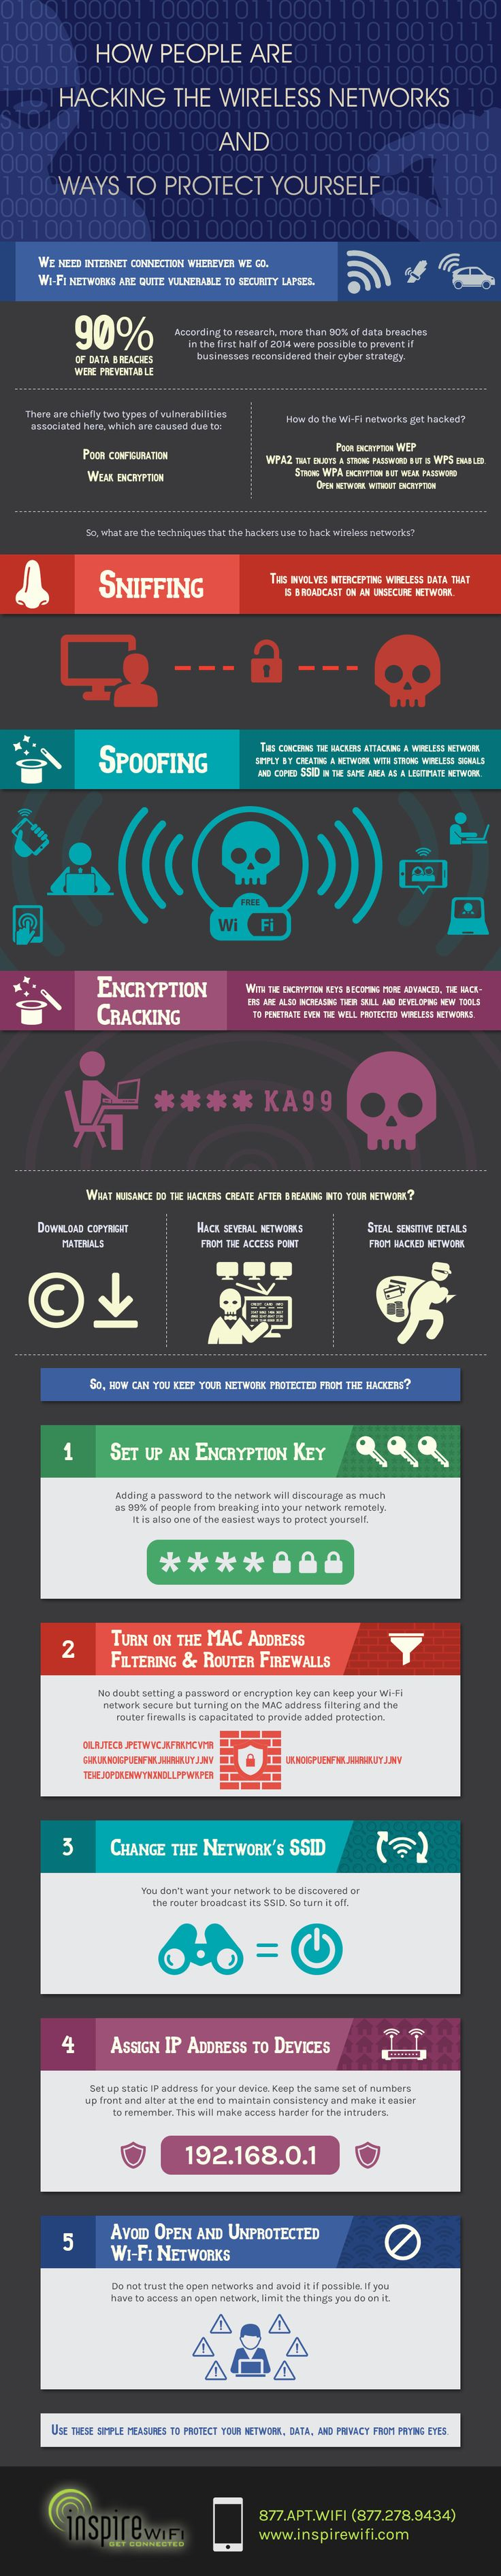 How People are Hacking the Wireless Networks #Infographic #Hacking #WiFi